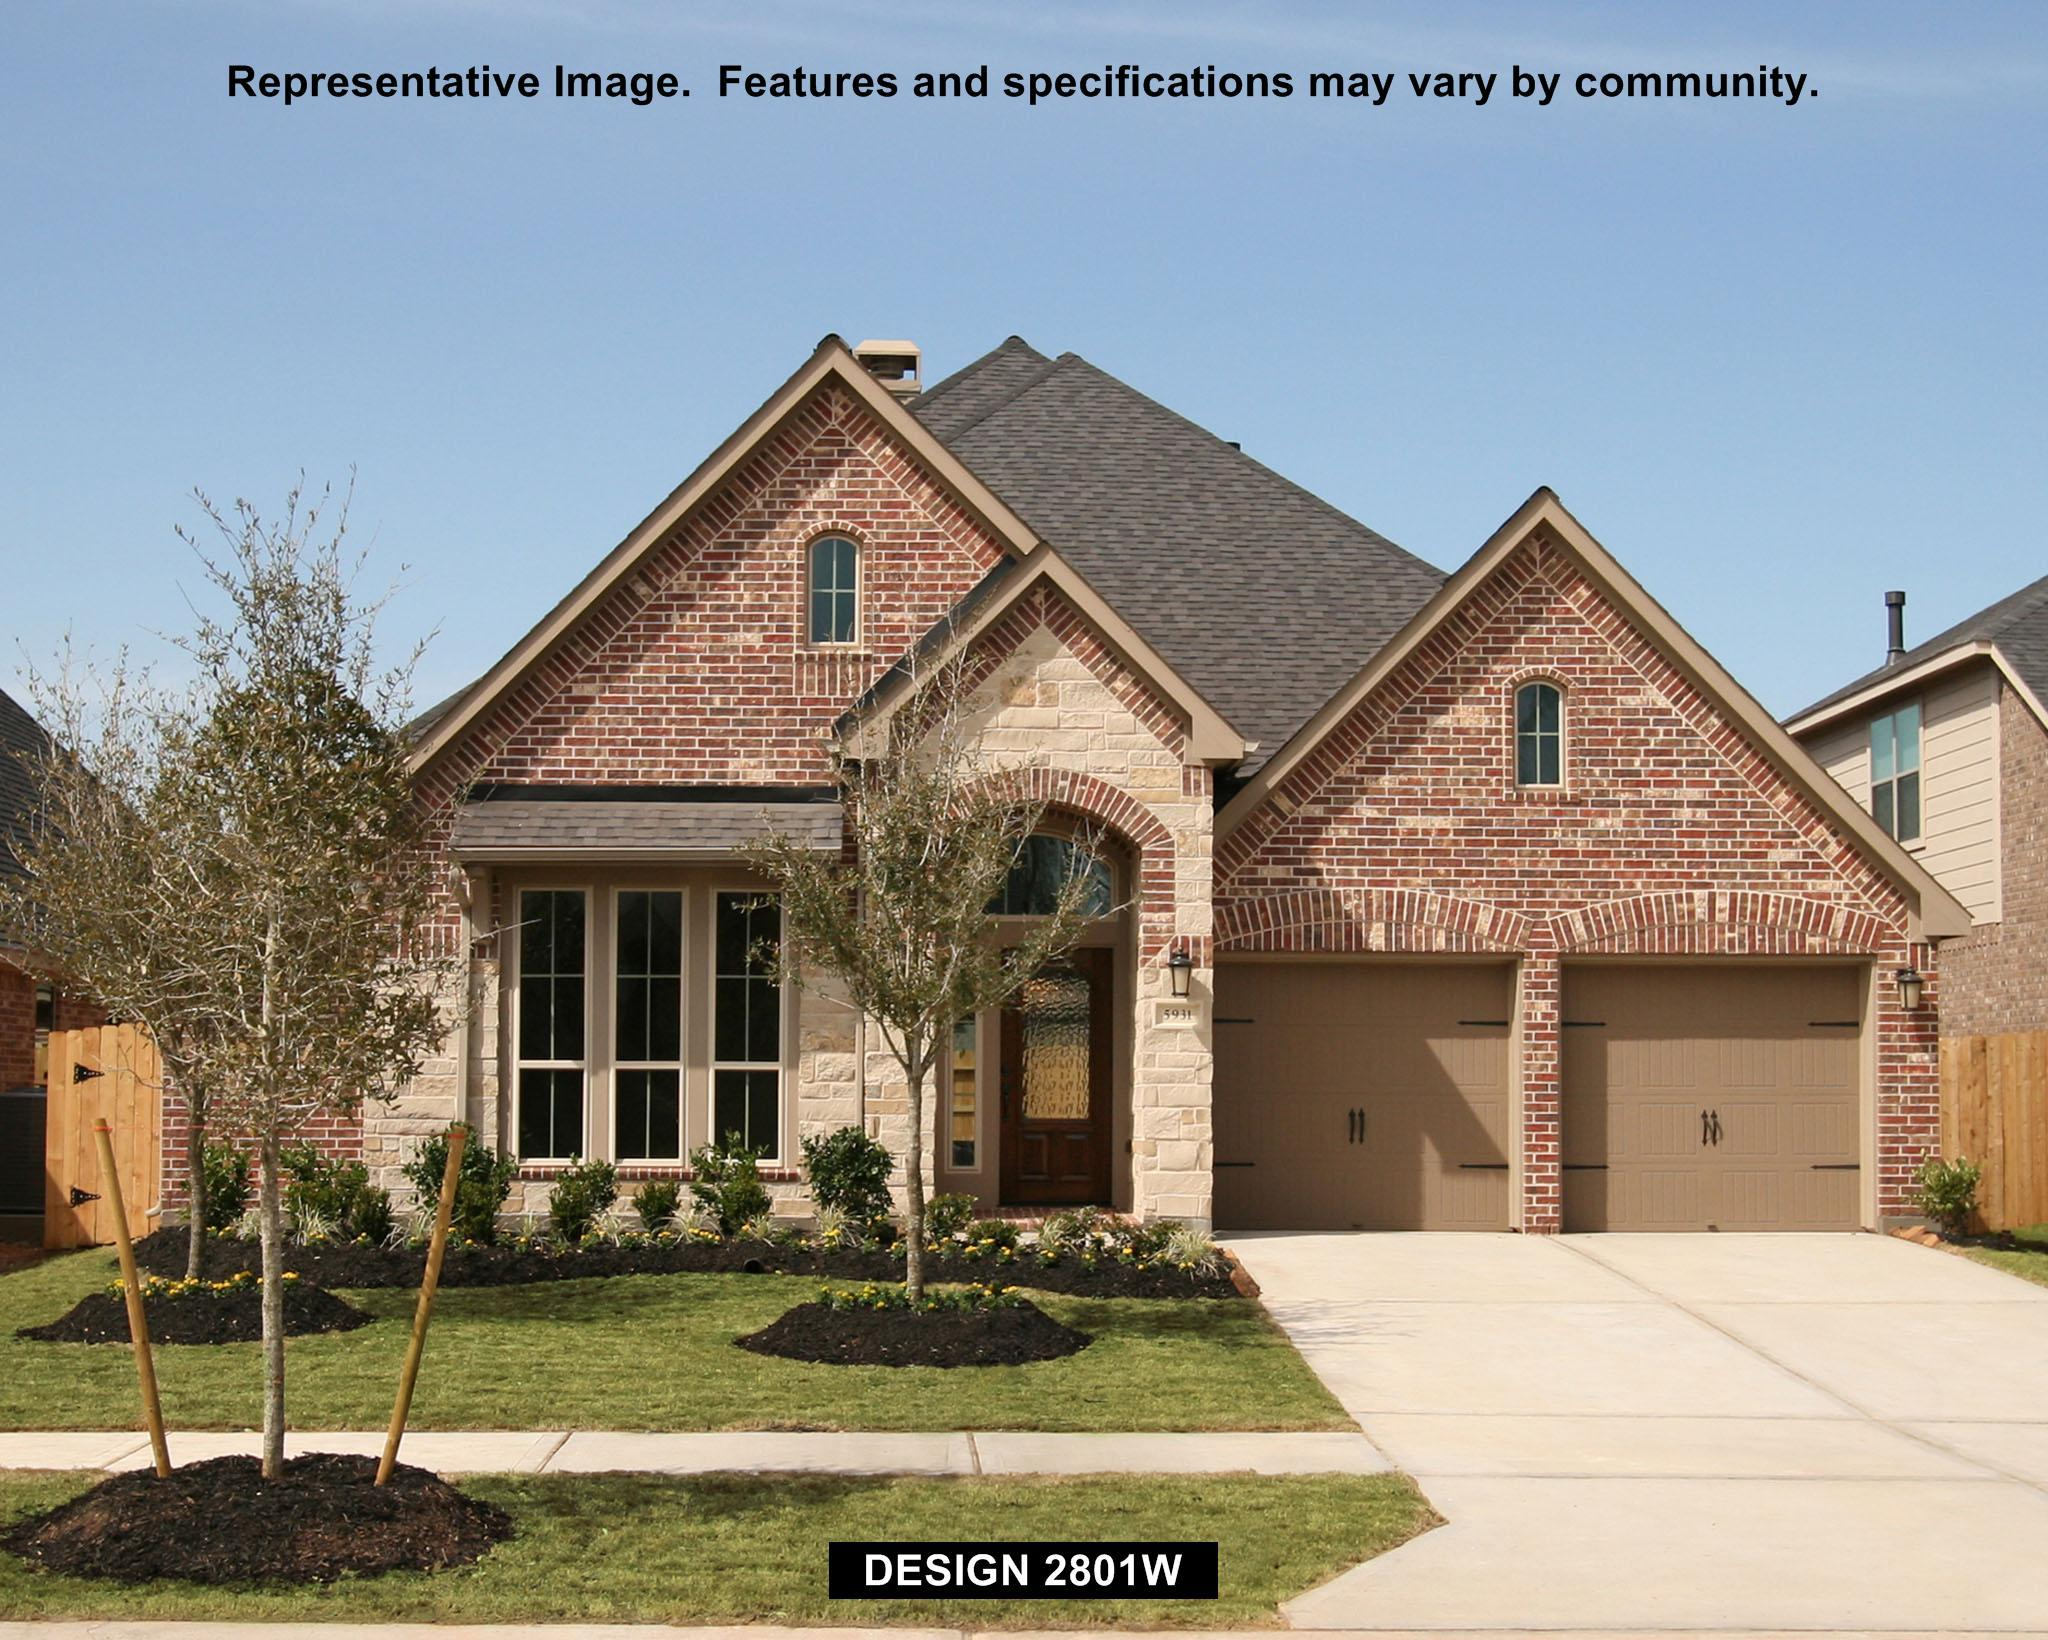 New home source sugar land tx new homes for sale autos post for New homes source